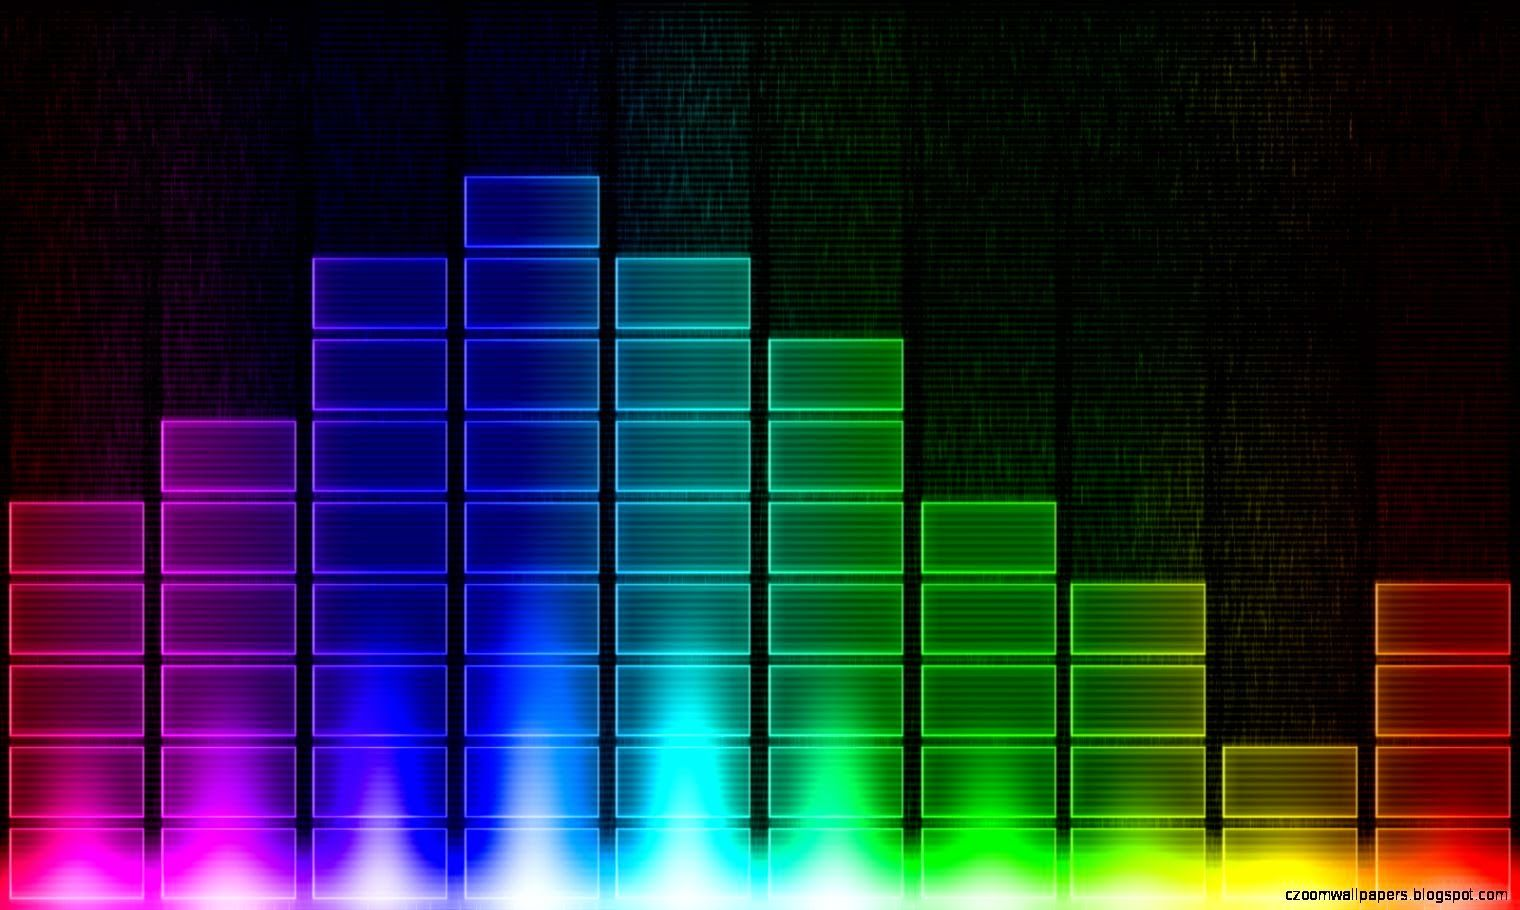 Audio Glow Music Visualizer And Live Wallpaper Updated To 2.0 With | Images Wallpapers